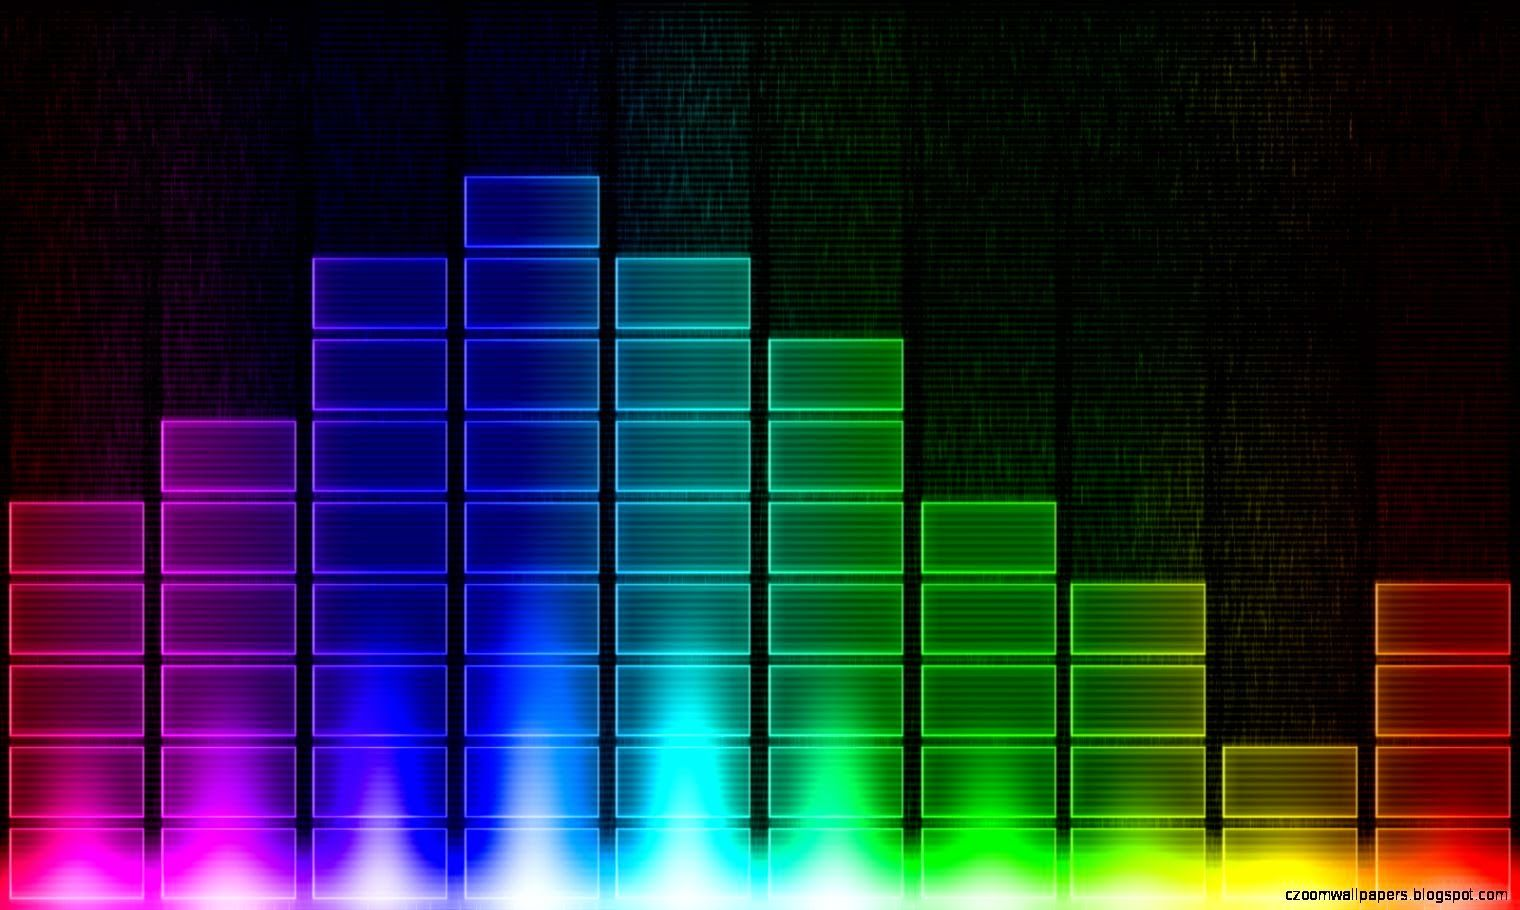 Audio Glow Music Visualizer And Live Wallpaper Updated To 2.0 With | Images Wallpapers